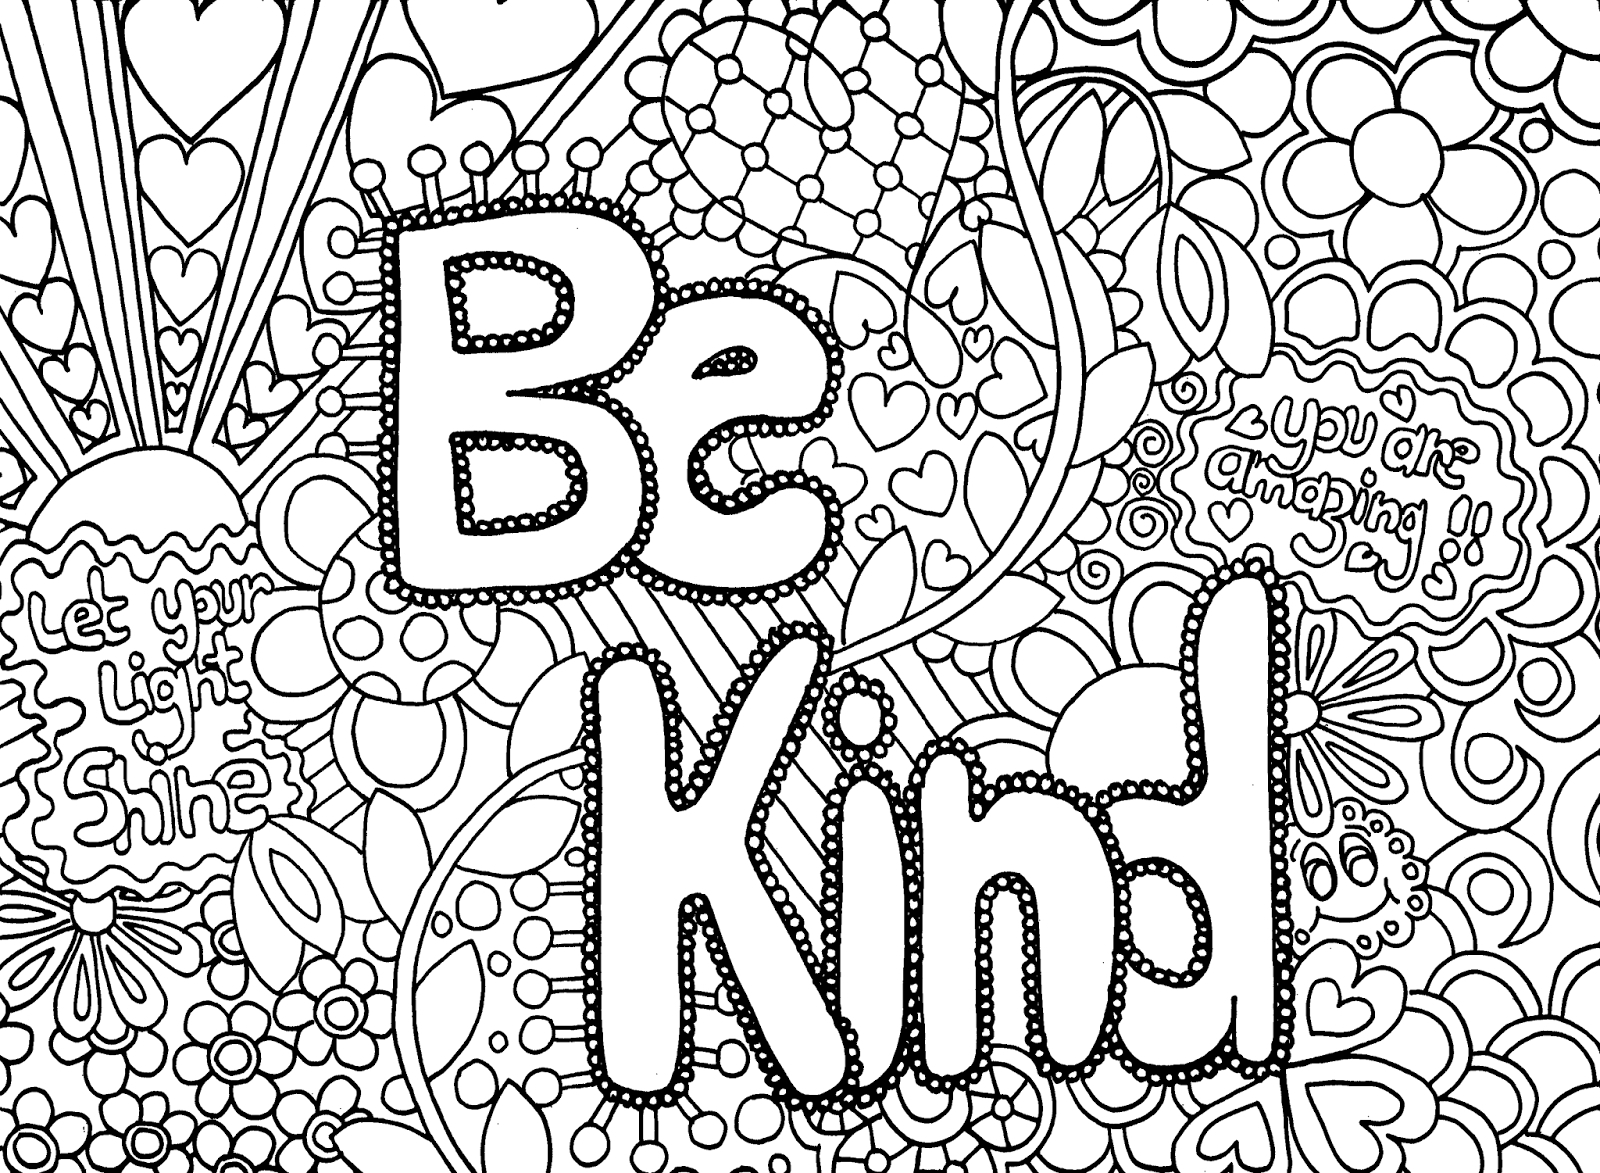 Fresh Inspirational Coloring Pages for Adults Line and Studynow to Print Of Free Printable Quote Coloring Pages for Grown Ups Download